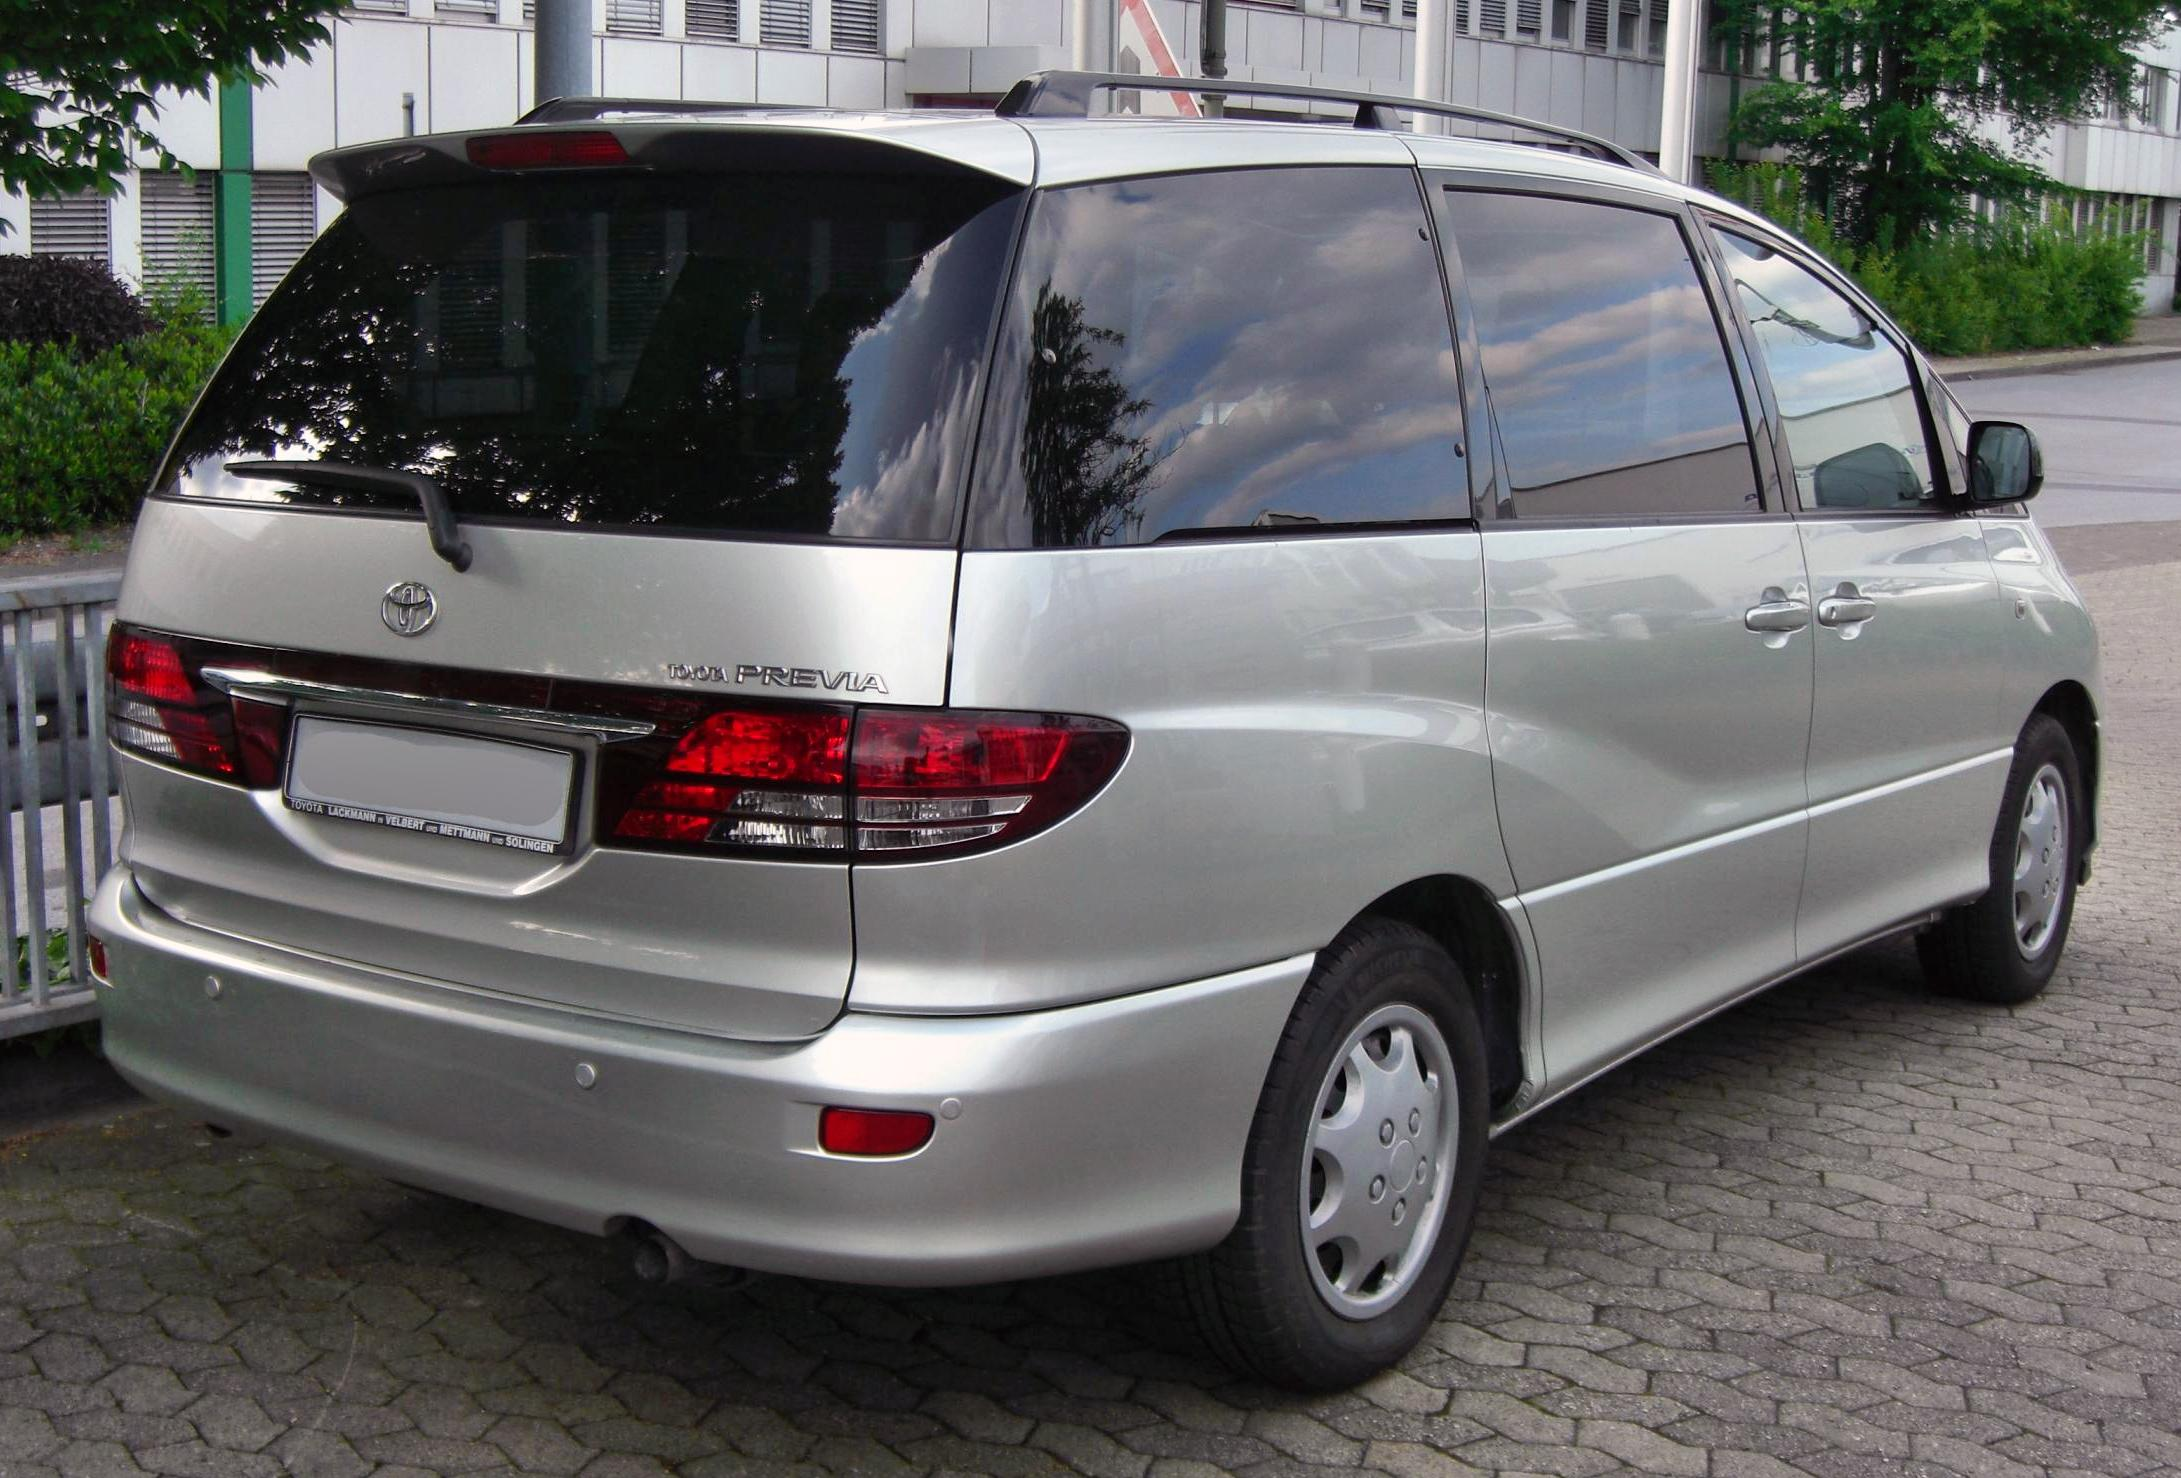 Toyota Previa 2005 Review Amazing Pictures And Images Look At